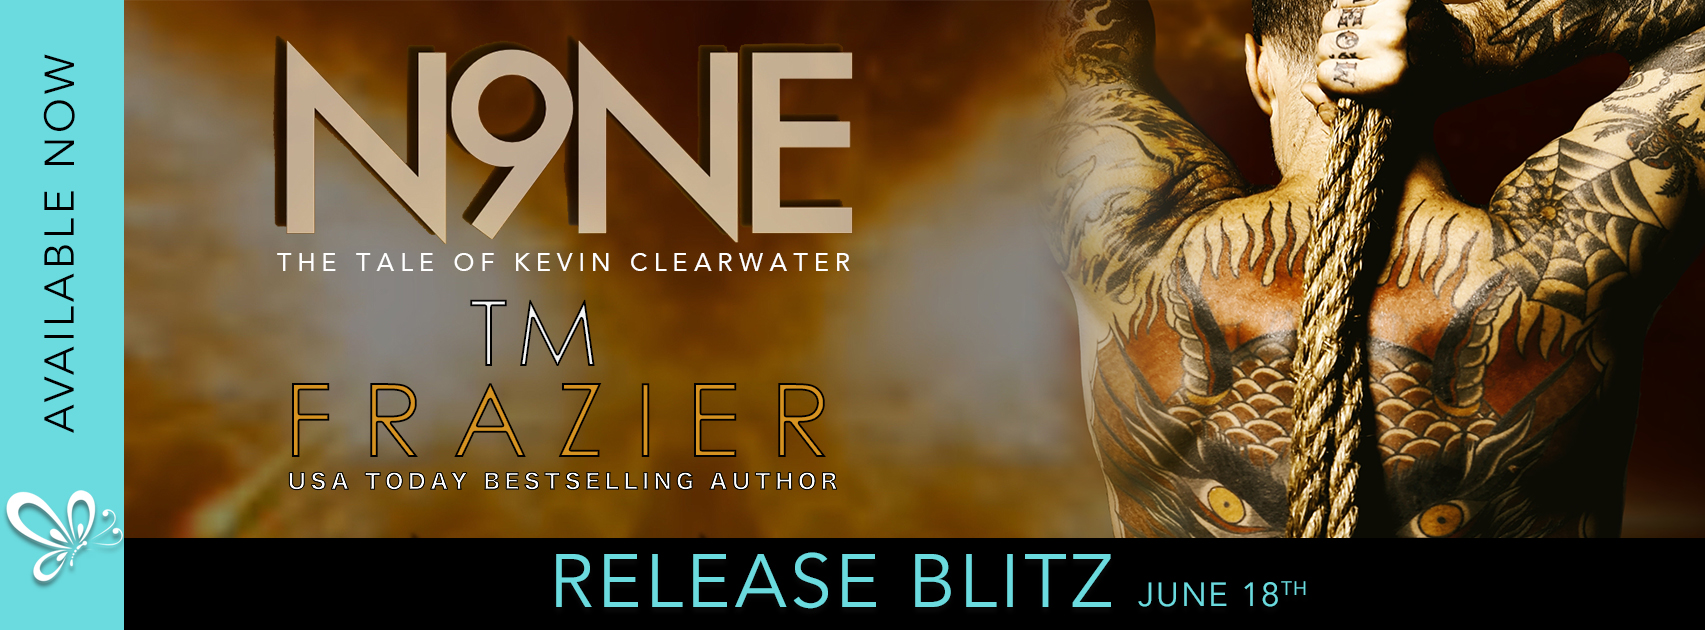 [Release Blitz] NINE: THE TALE OF KEVIN CLEARWATER by T.M. Frazier